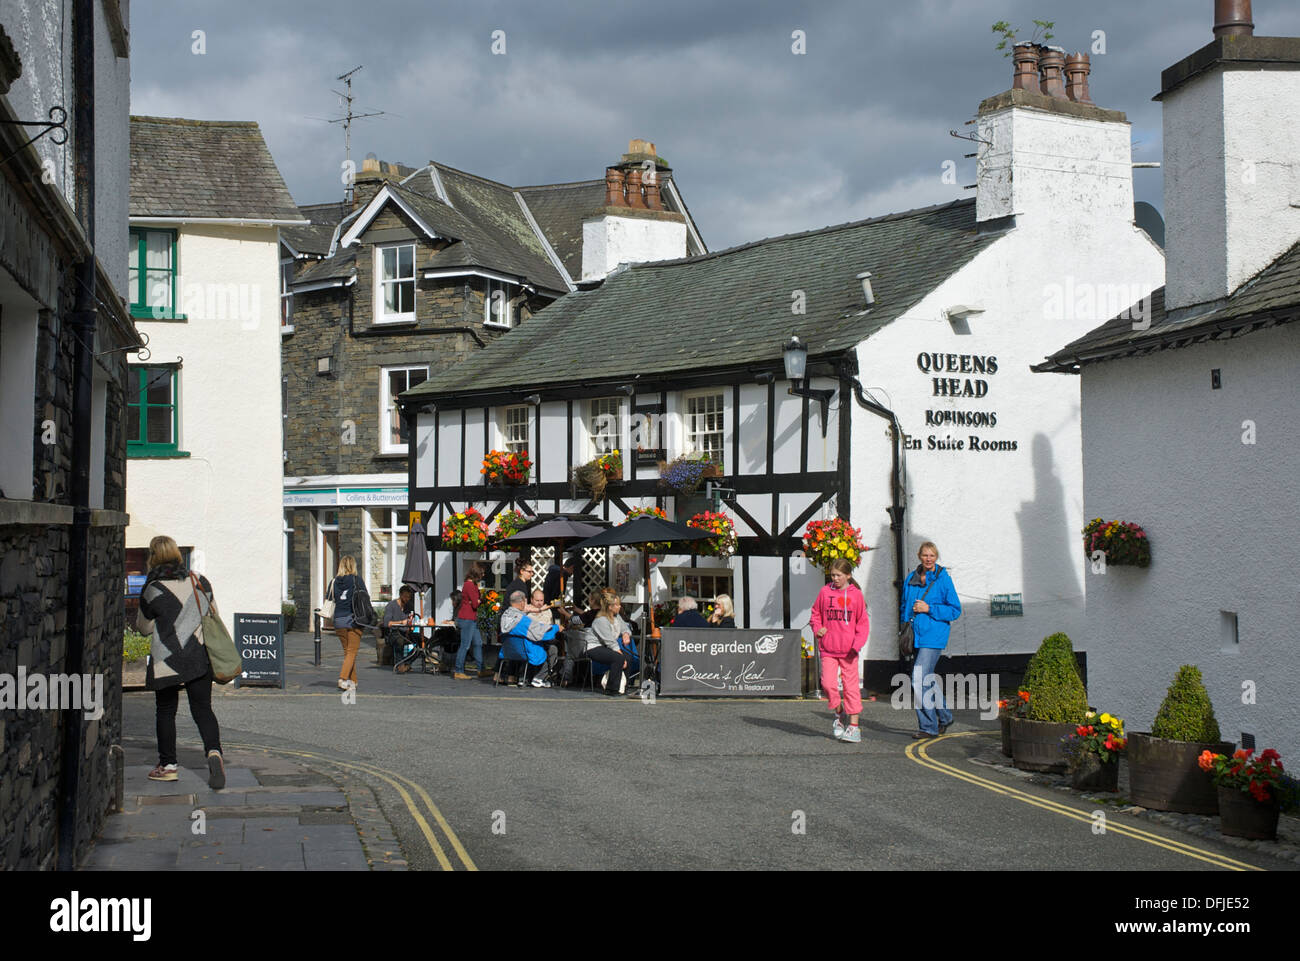 The Queens Head pub in the village of Hawkshead, Lake District National Park, Cumbria, England UK - Stock Image